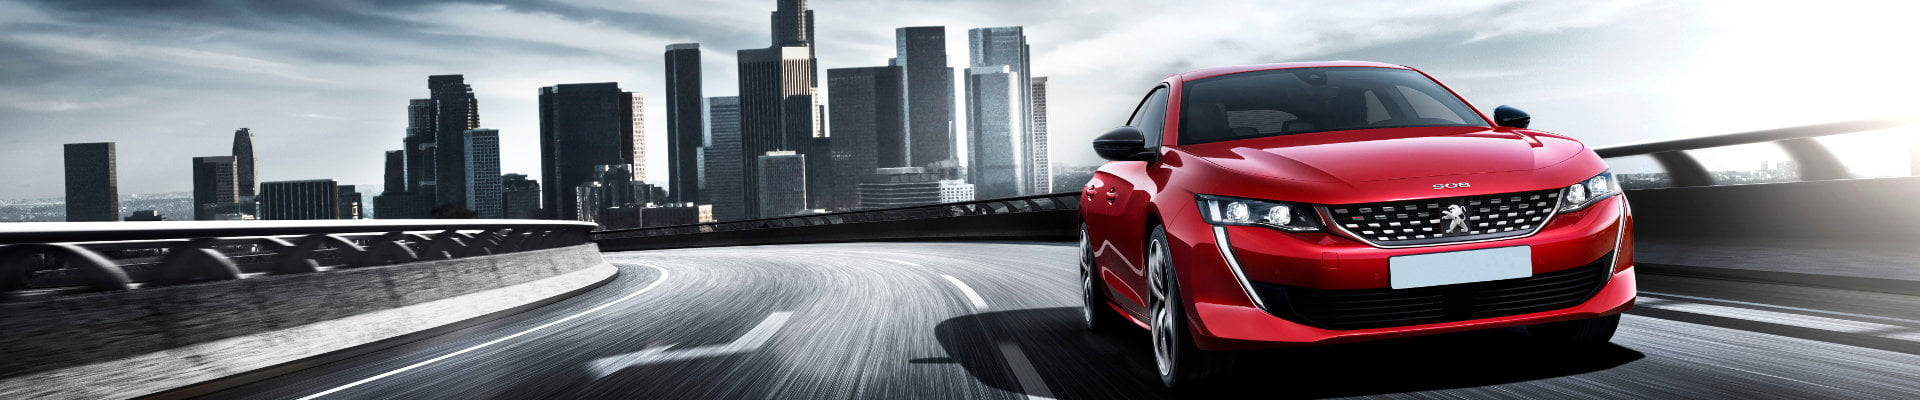 Brands available from TysonCooper - Peugeot